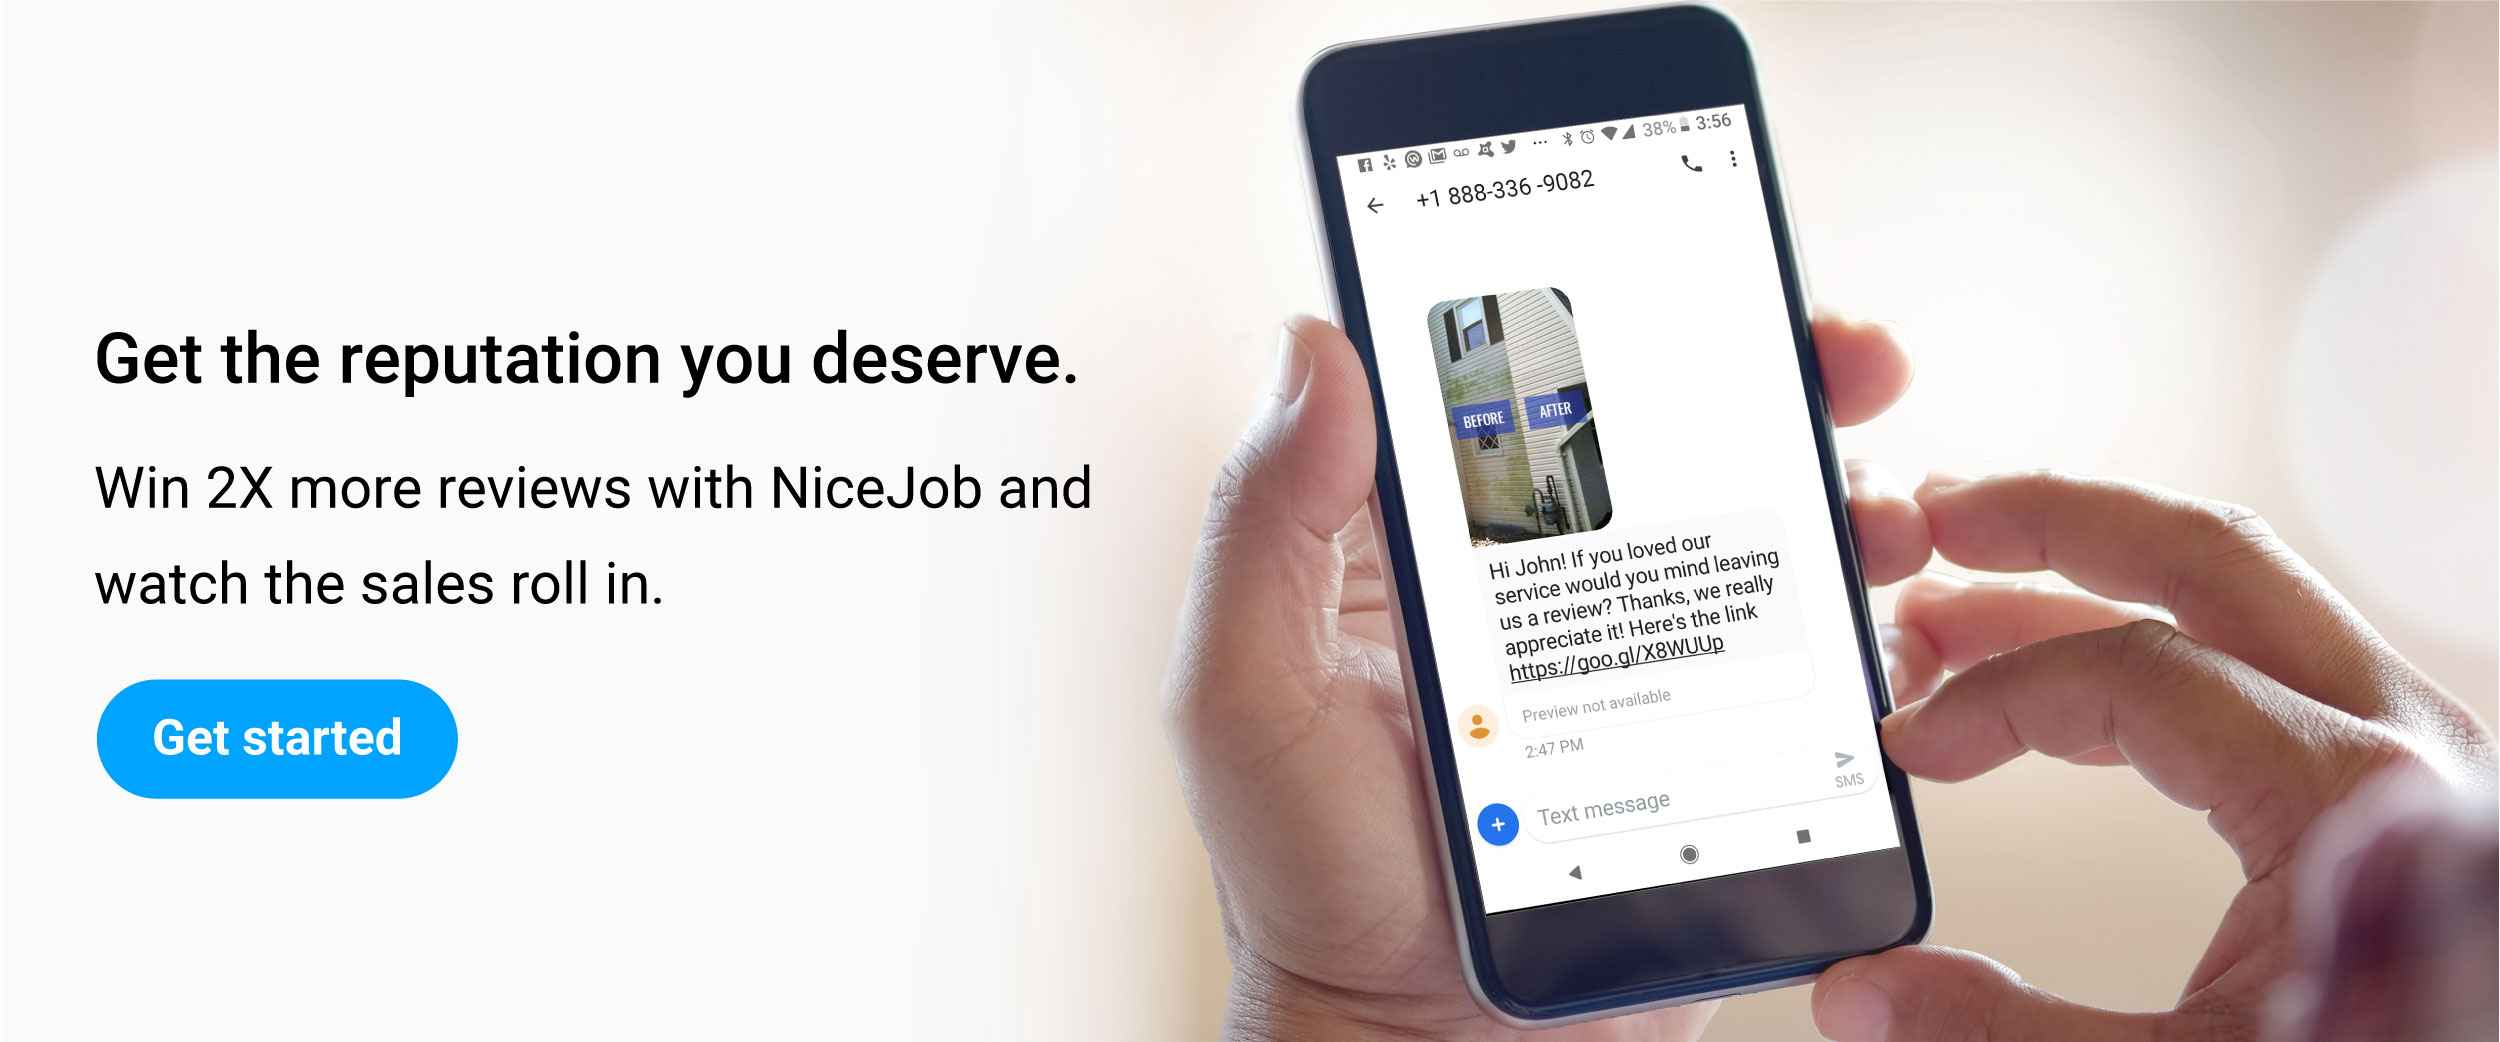 Banner image of NiceJob's reputation-marketing software to get more customer reviews.